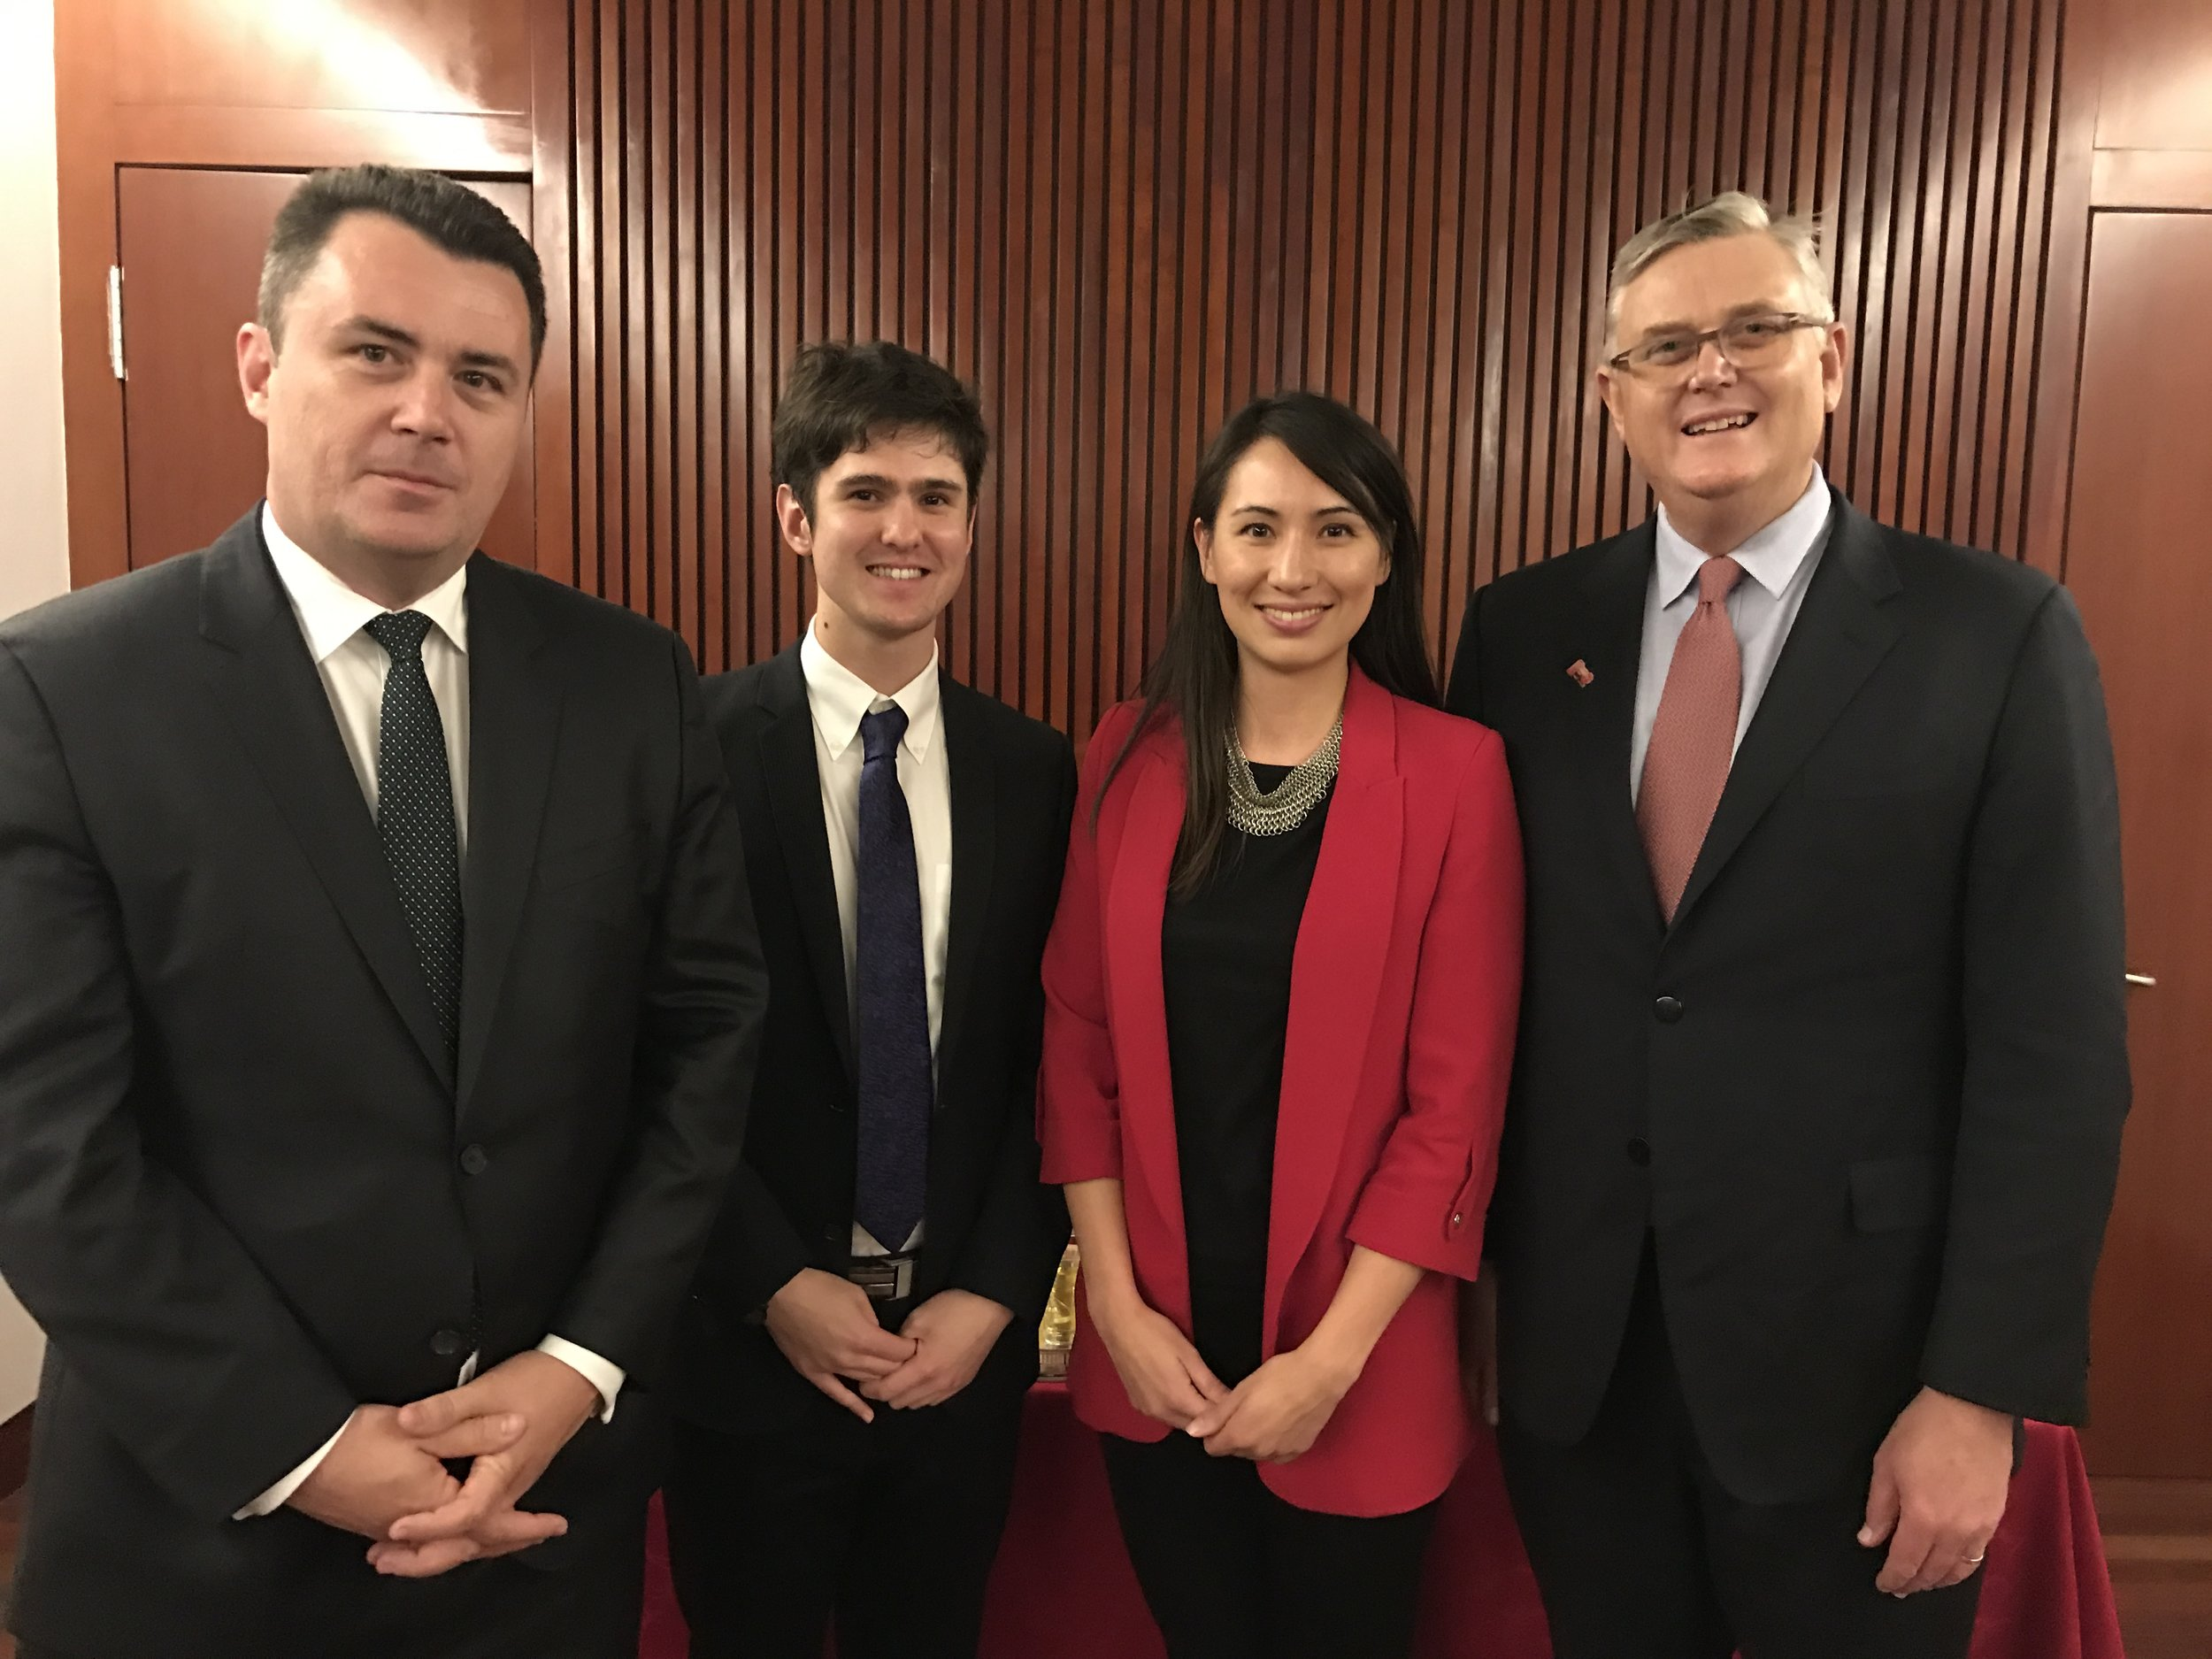 From left to right: Dan Ryan (Australia-China Council Board Member), Liam Kearney (ACYD 2017 Alumnus), Cindy Gottinger (ACYD Board Member and 2013 Alumna) and Harold Weldon (Australia-China Council Board Member).